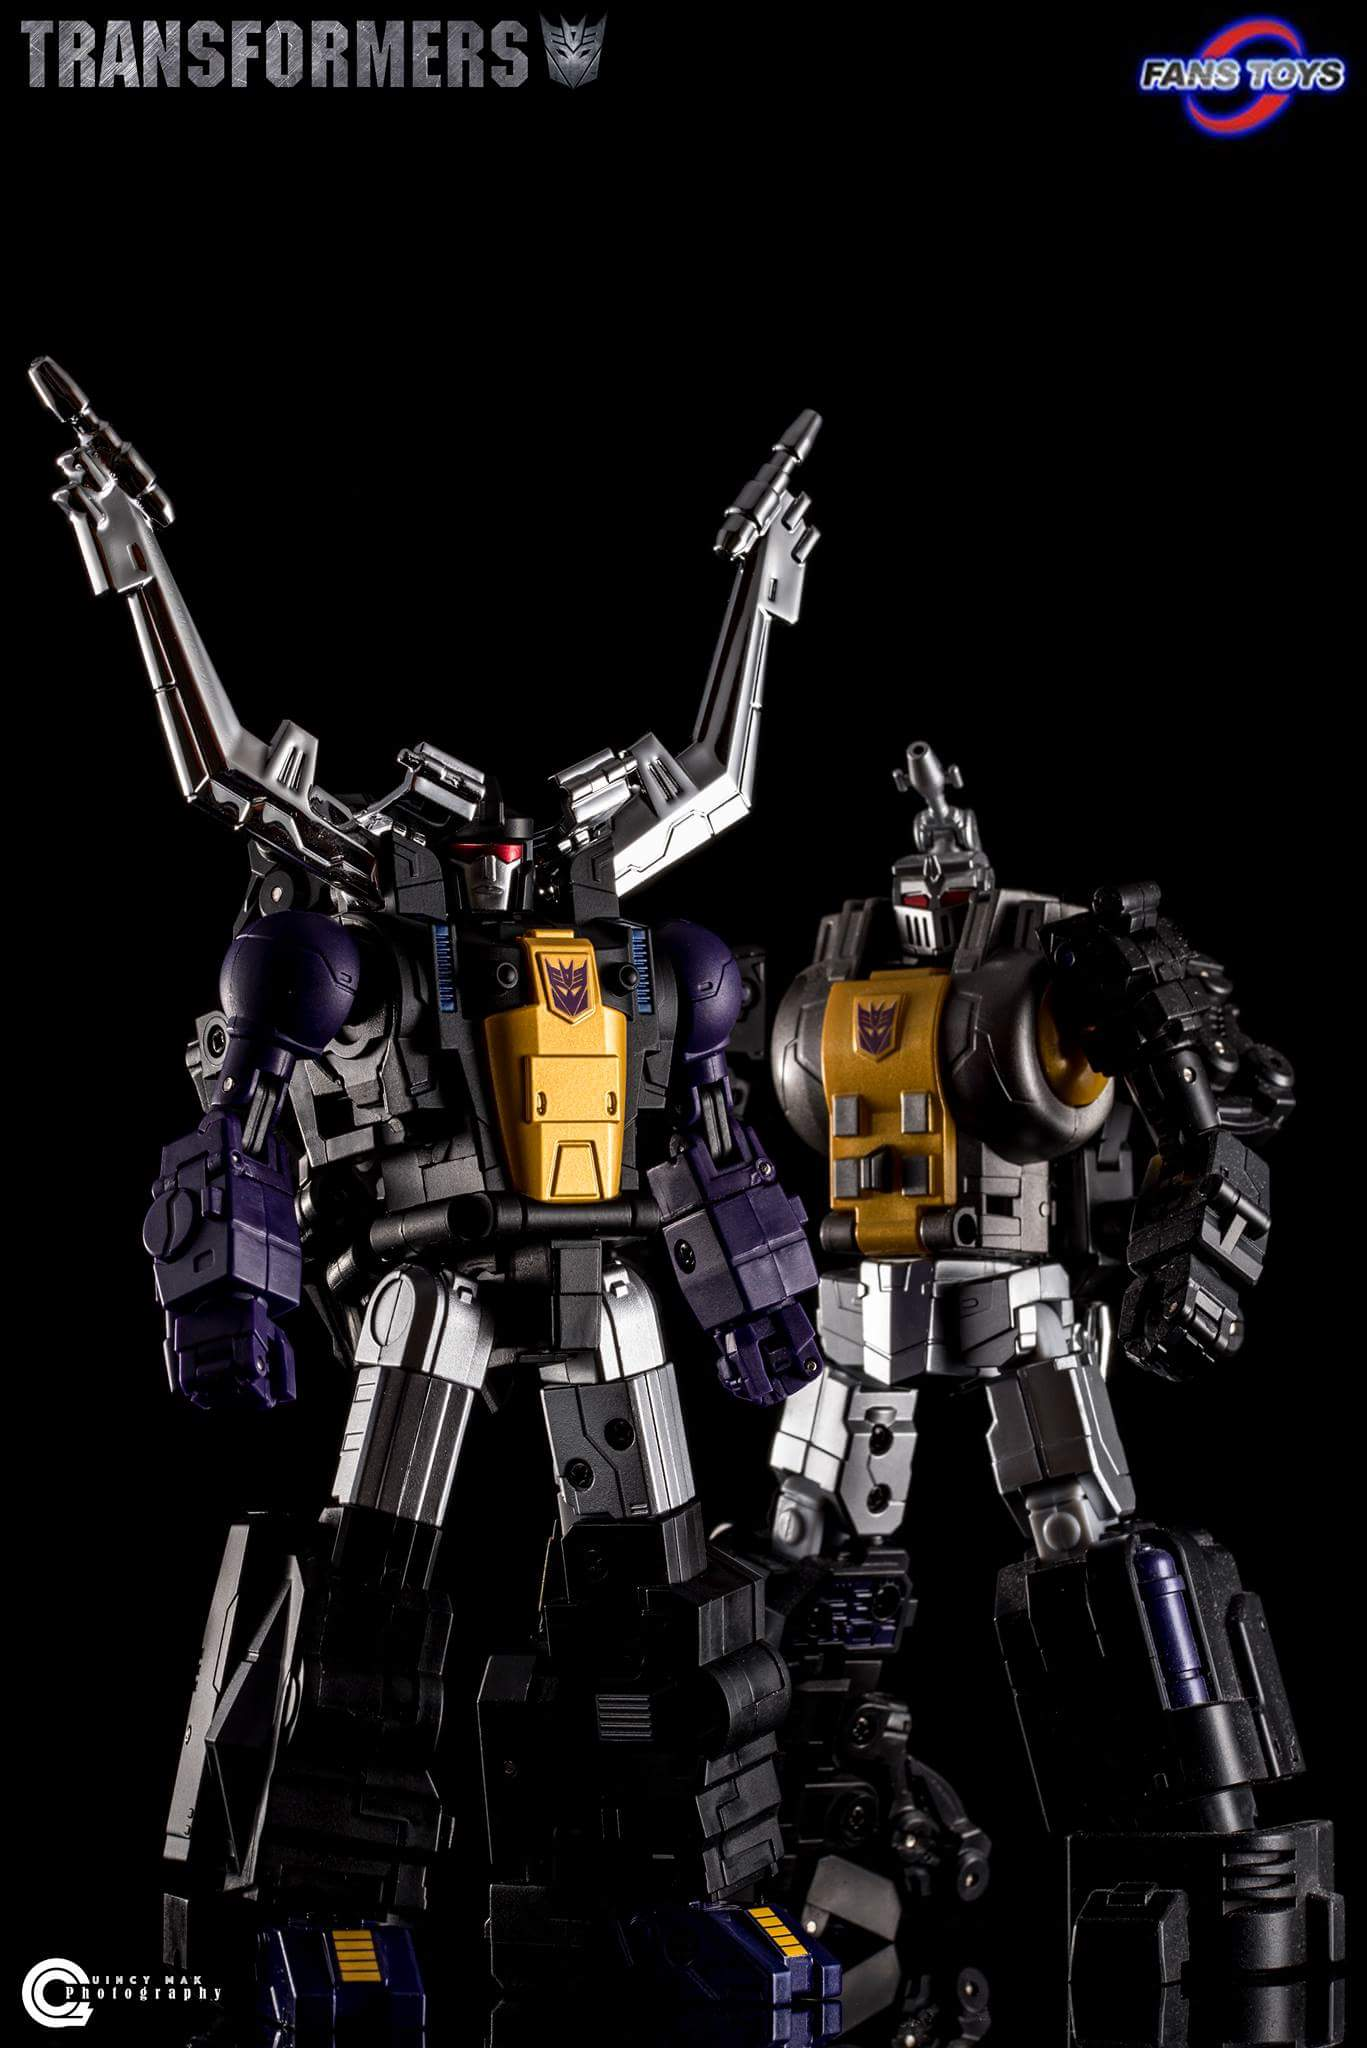 [Fanstoys] Produit Tiers - Jouet FT-12 Grenadier / FT-13 Mercenary / FT-14 Forager - aka Insecticons - Page 3 PnY0Ixyj